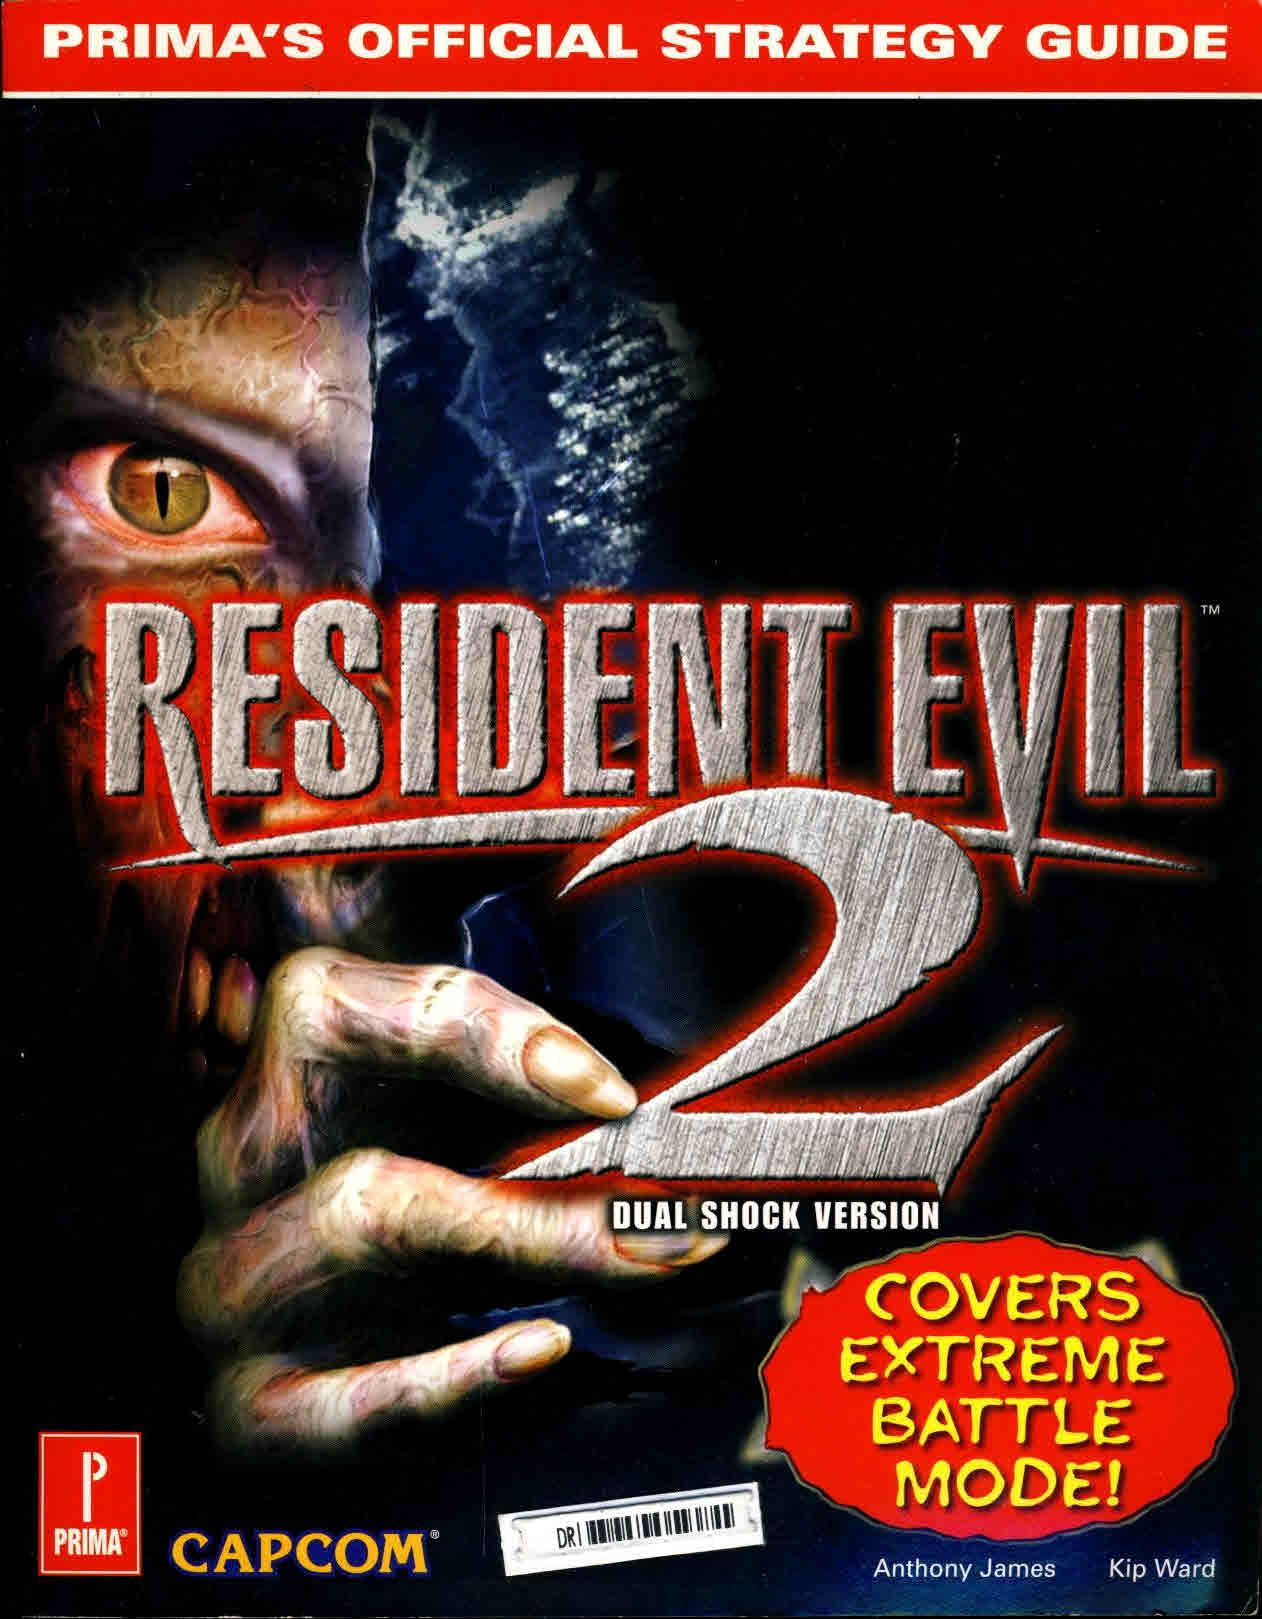 RESIDENT EVIL 2 Dual Shock Version Prima's Official Strategy Guide  ref101002 S1-box2